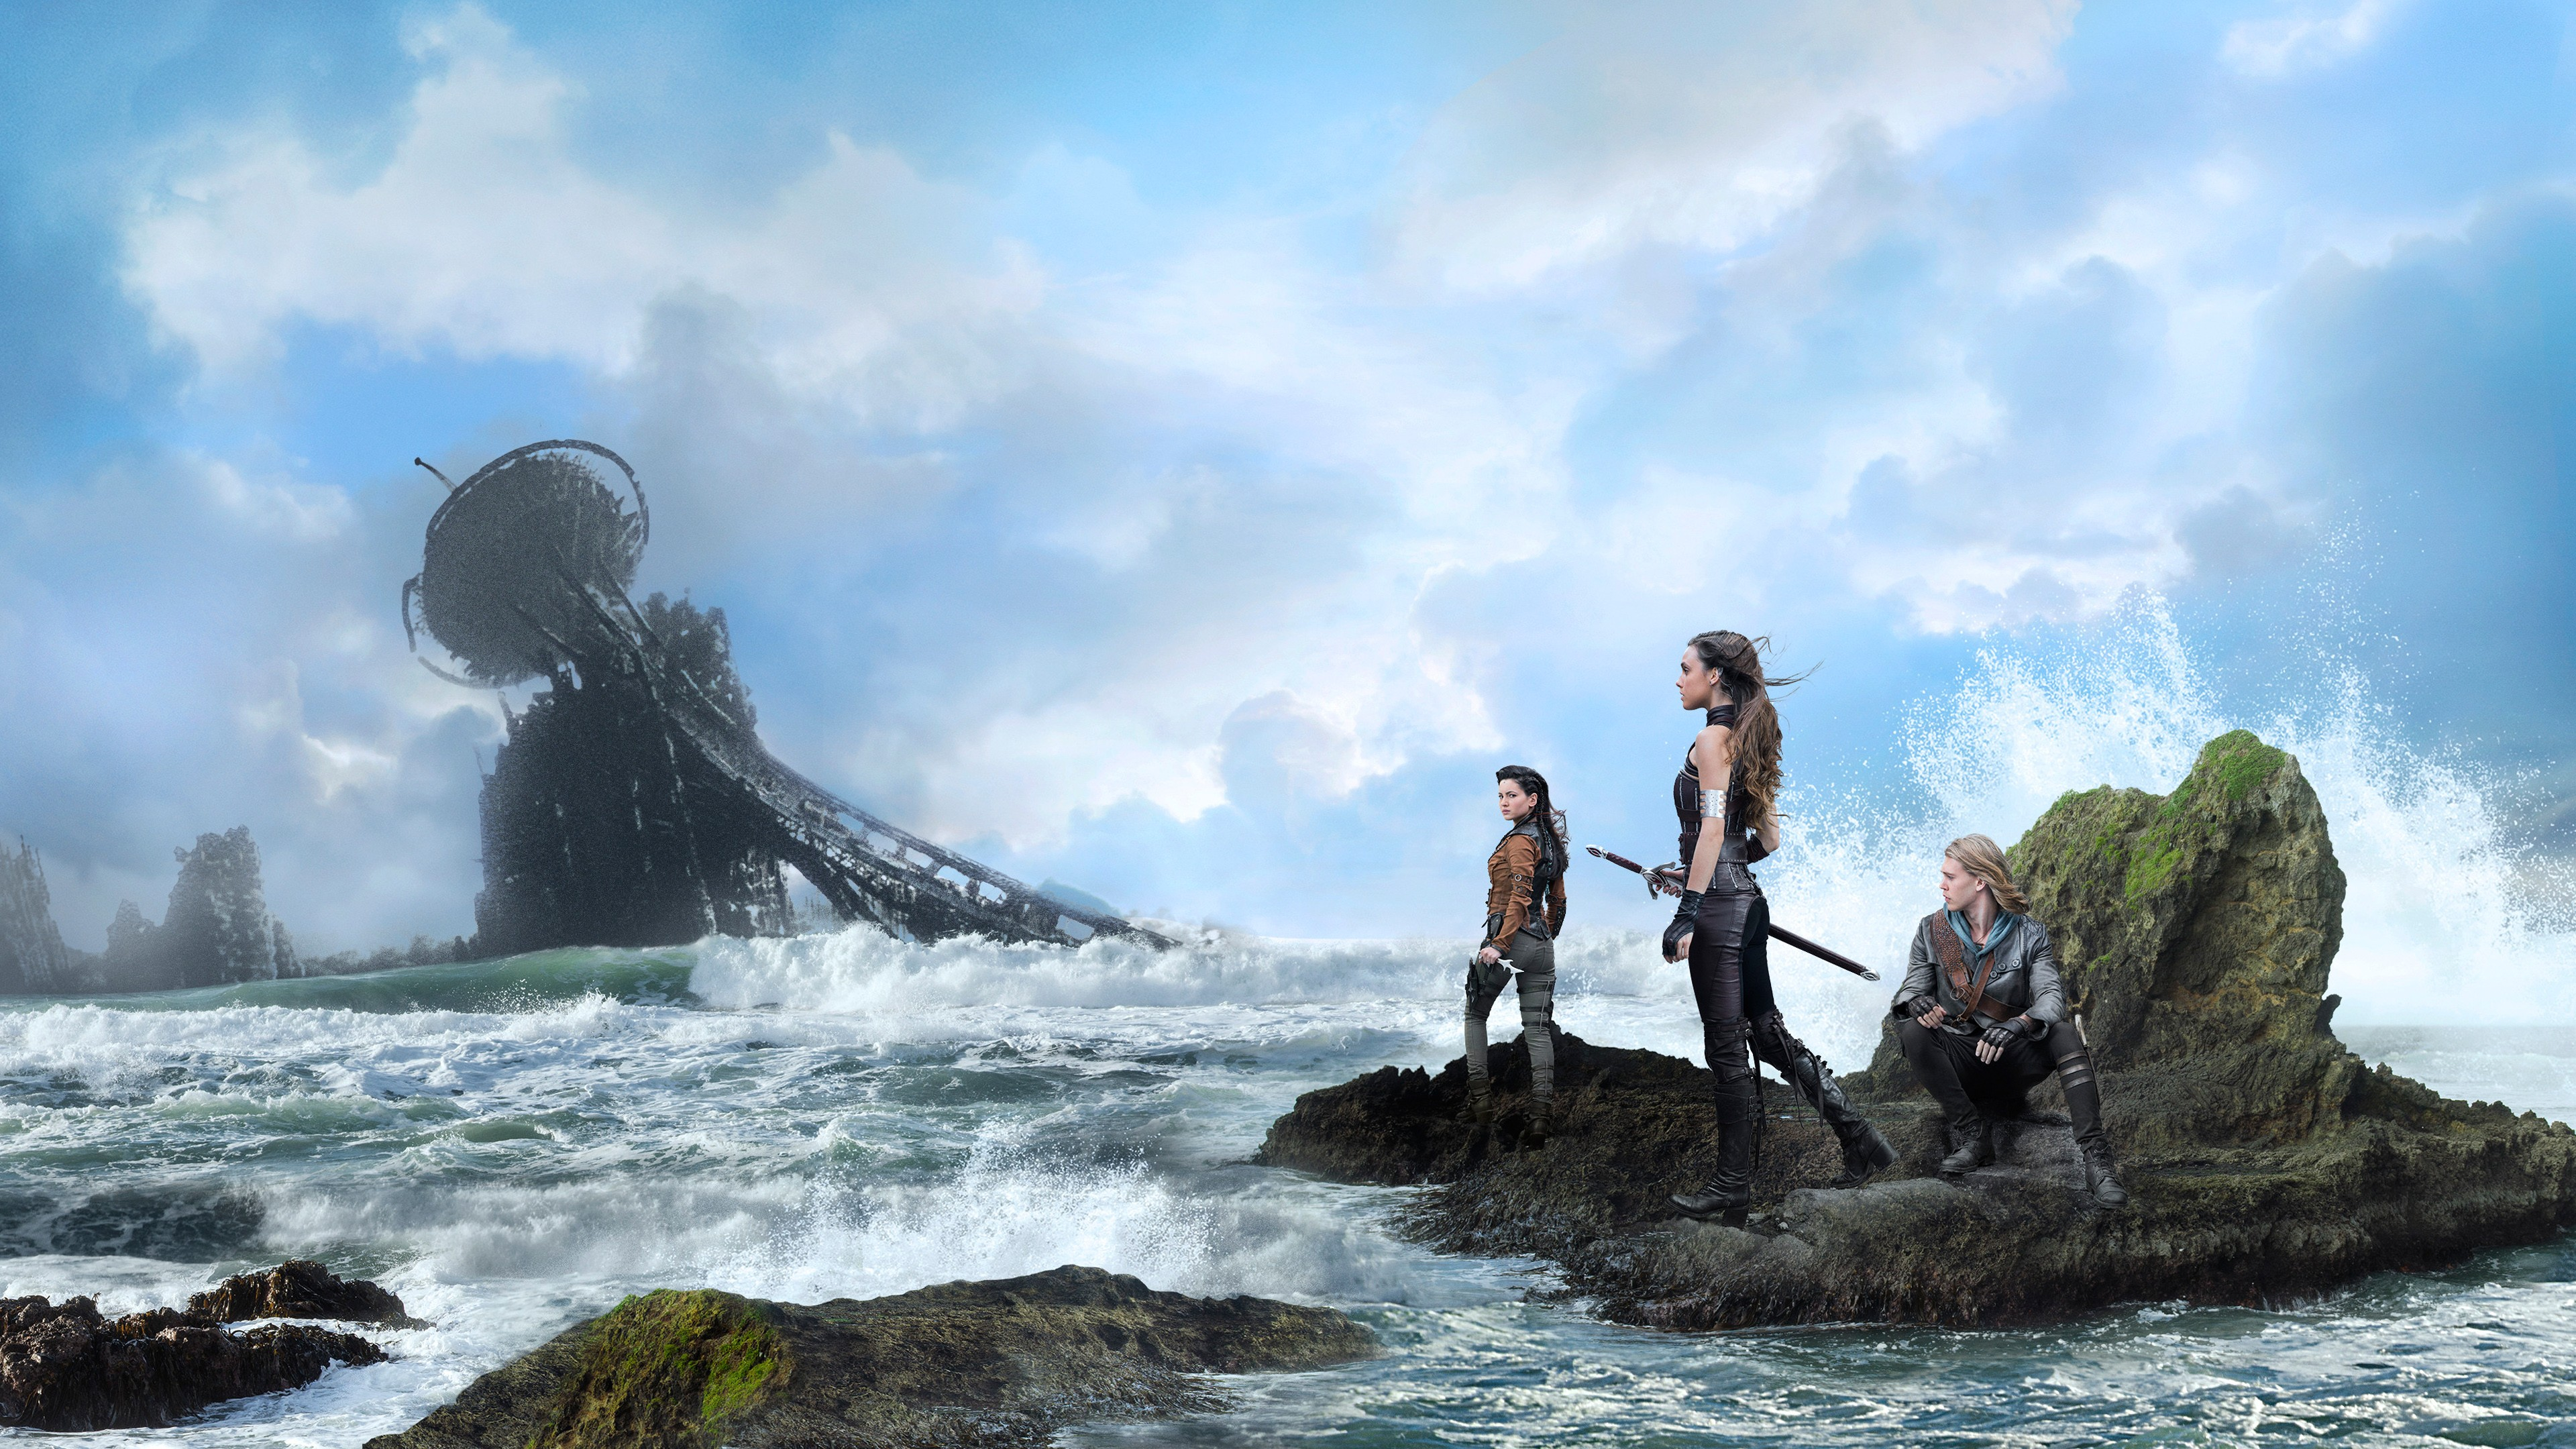 The shannara chronicles hd tv shows 4k wallpapers - Tv series wallpaper 4k ...